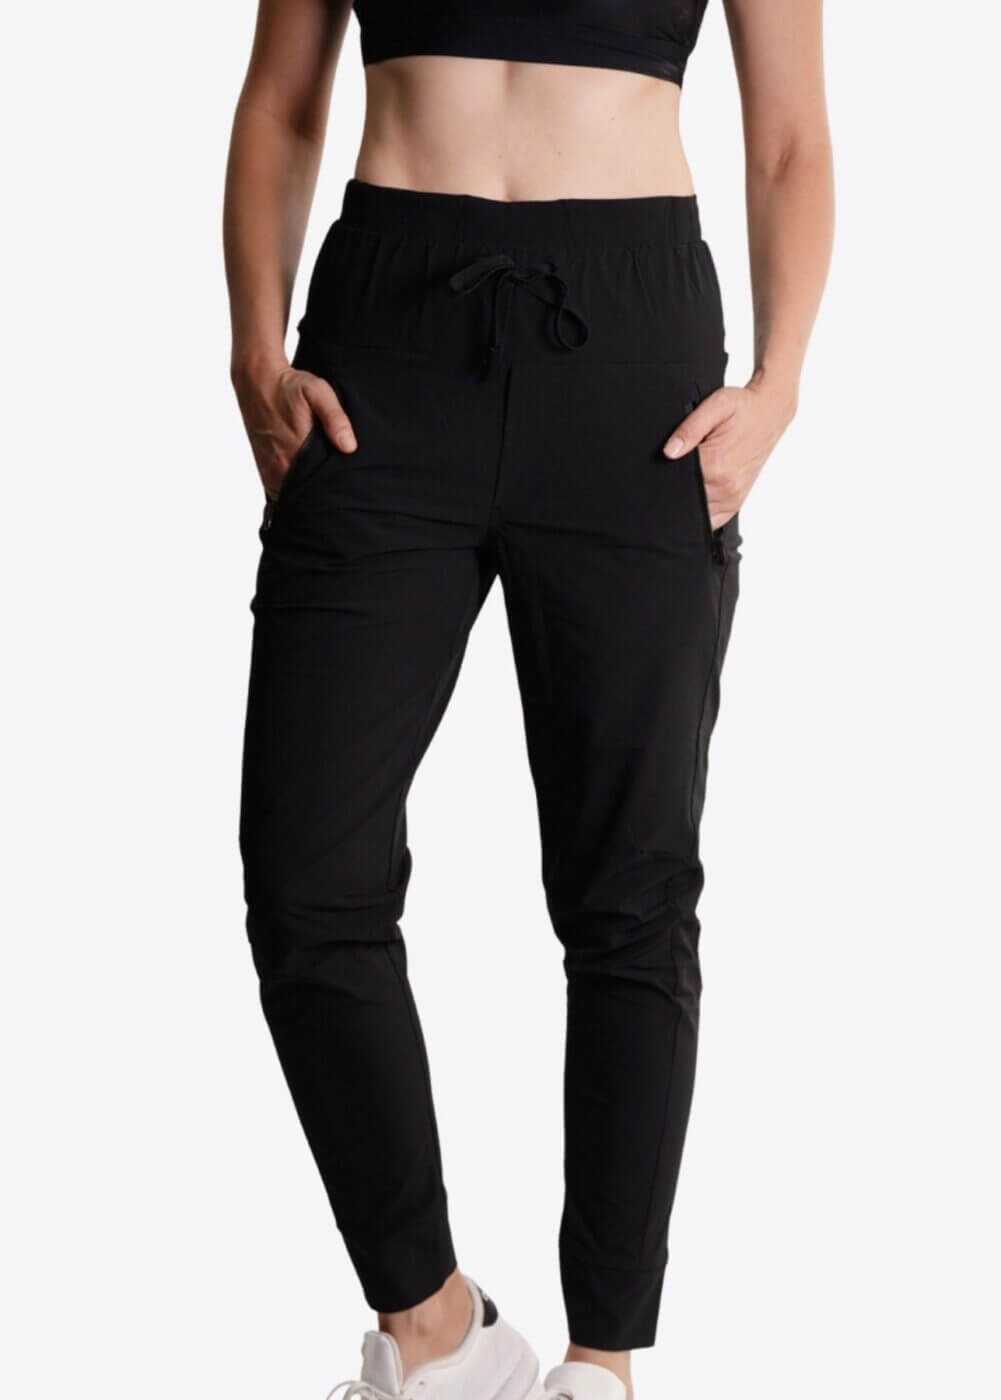 Tuck & Carry CCW jogger athletic pants